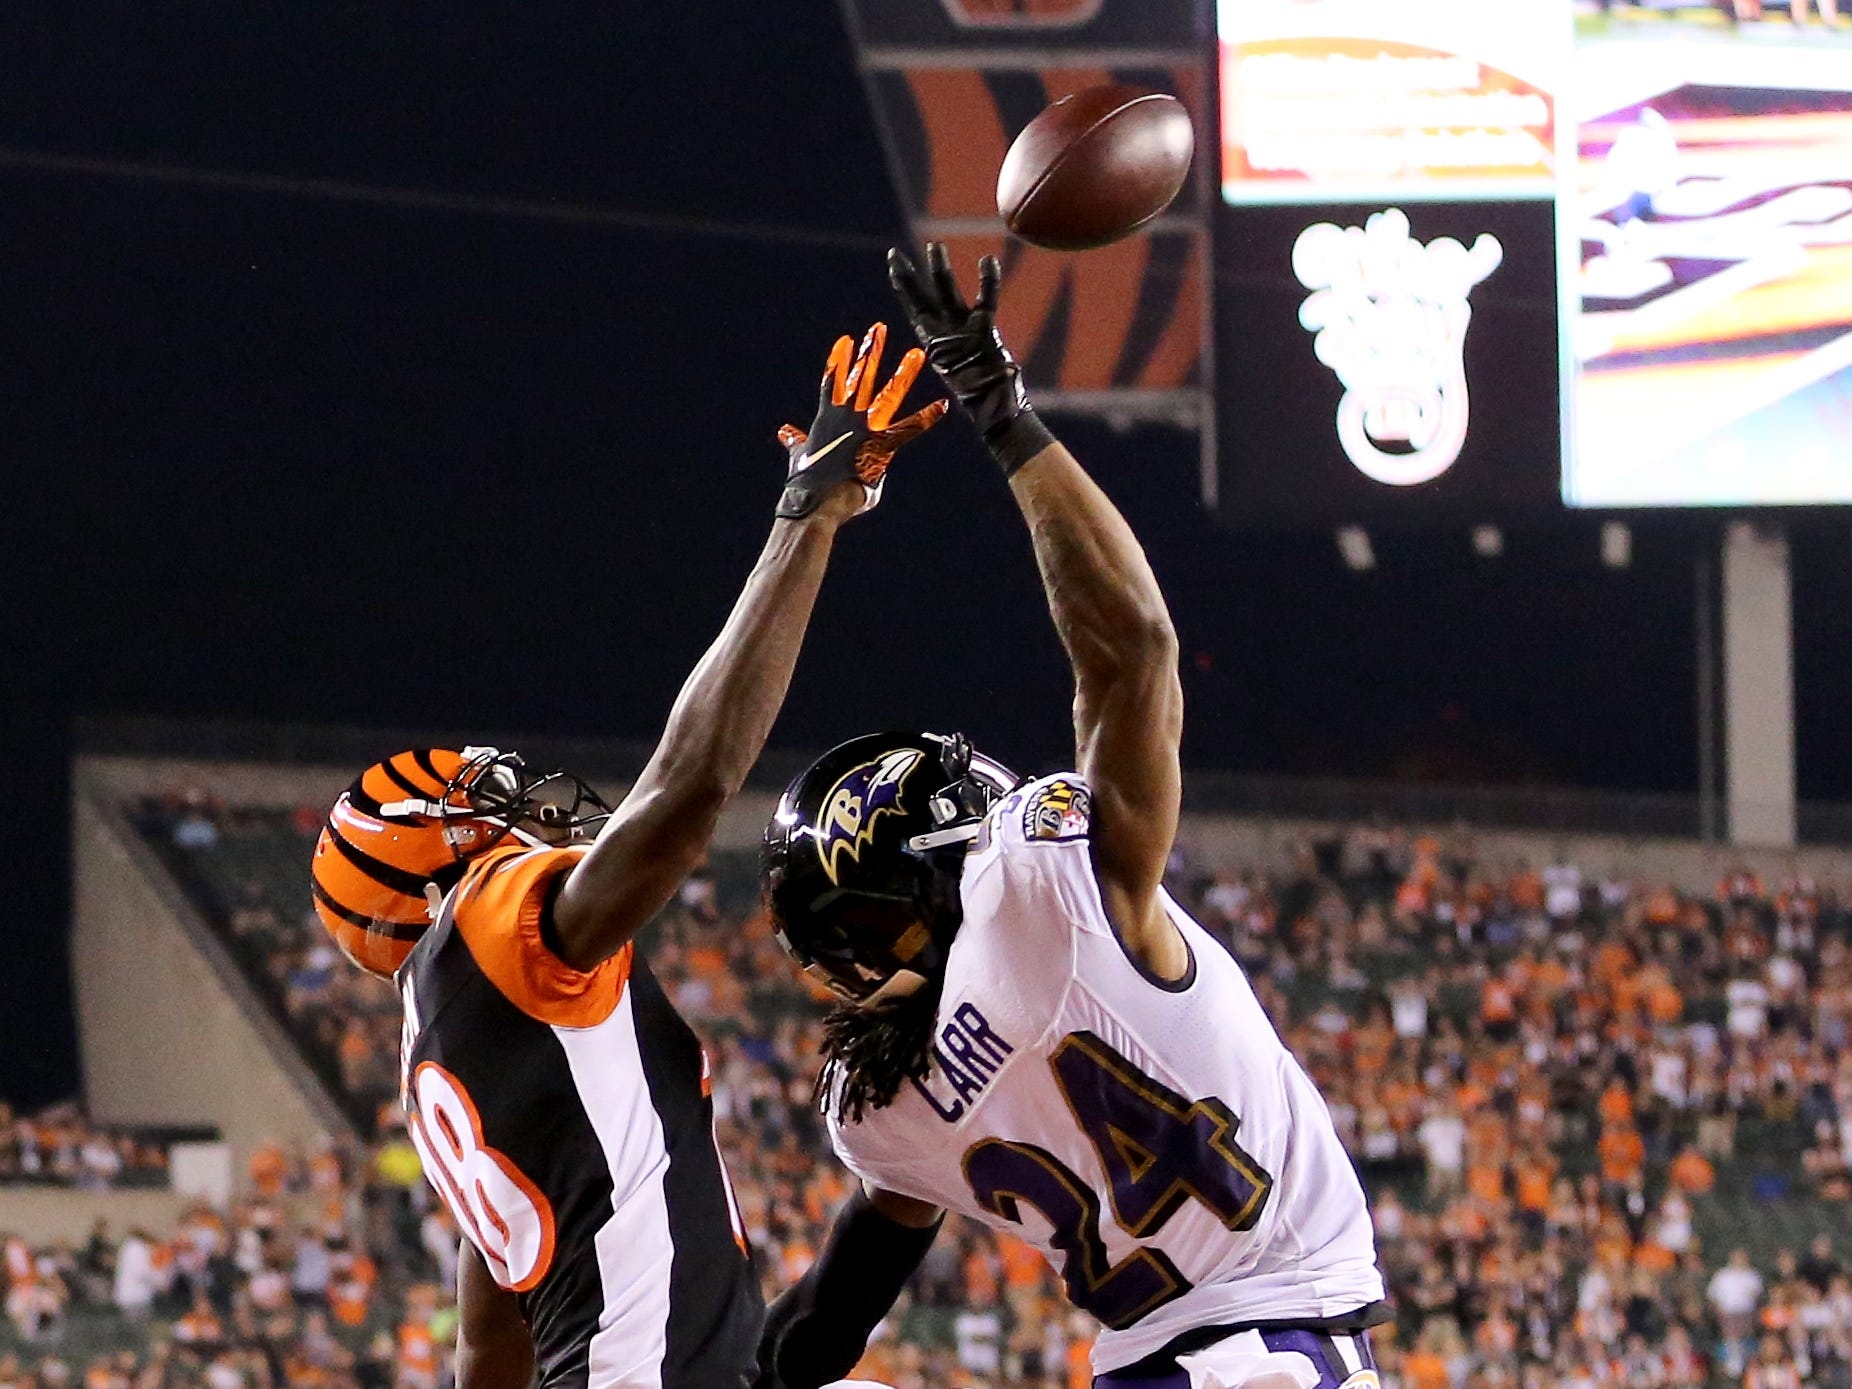 Cincinnati Bengals wide receiver A.J. Green (18) goes up for a pass as Baltimore Ravens defensive back Brandon Carr (24) defends in the first quarter during the Week 2 NFL football game between the Baltimore Ravens and the Cincinnati Bengals, Thursday, Sept. 13, 2018, Paul Brown Stadium in Cincinnati.